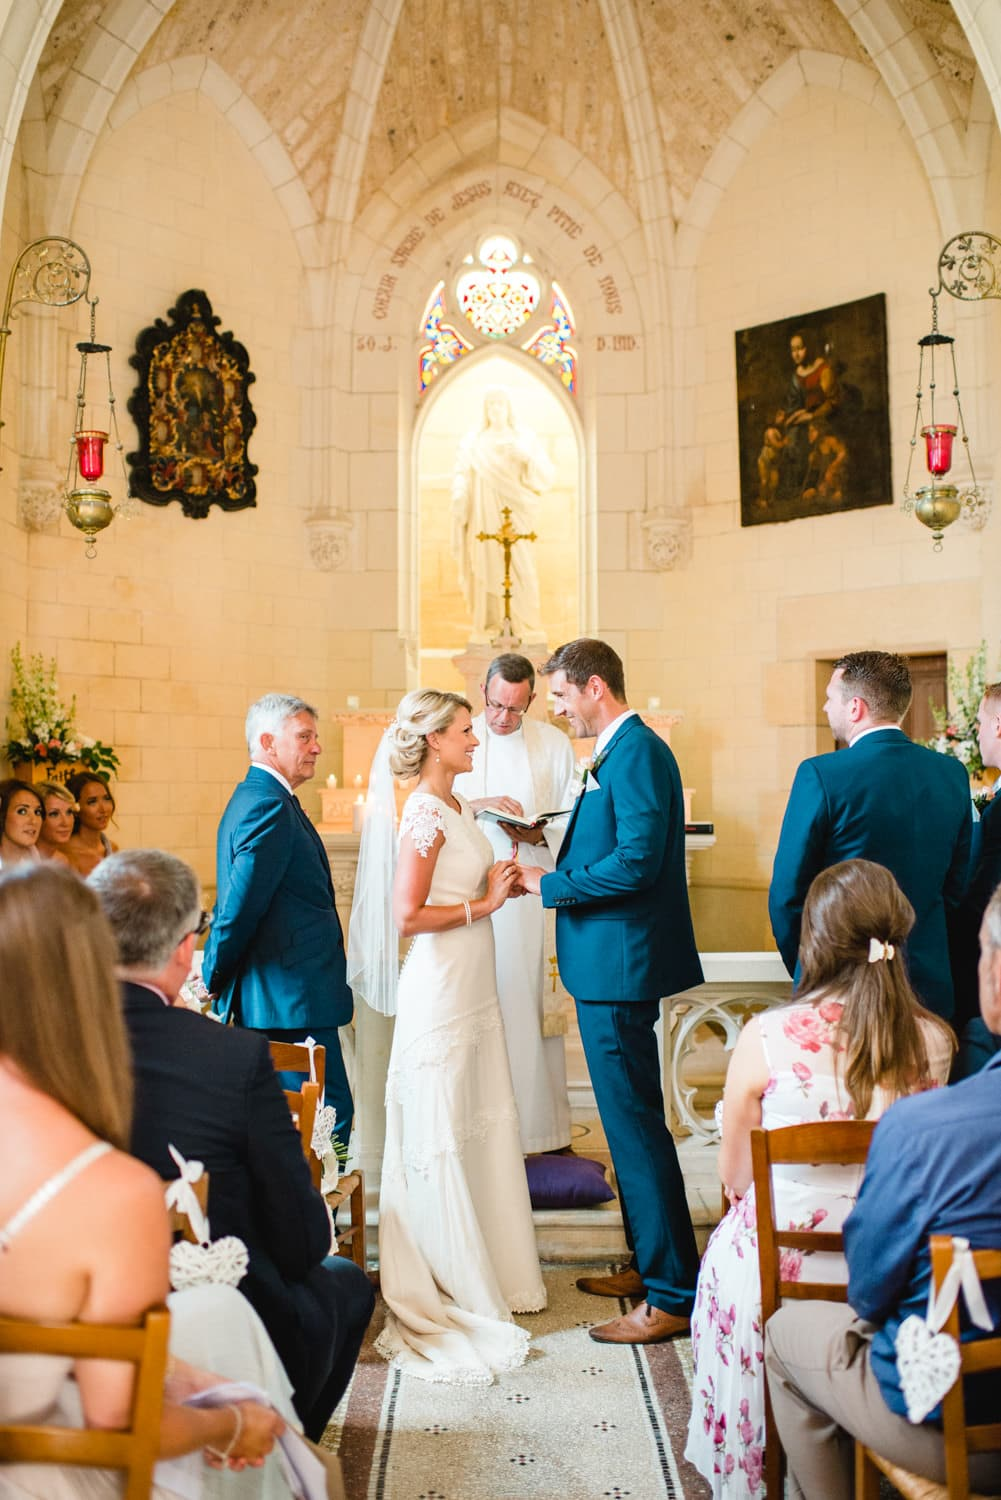 wedding ceremony in the chapel of Chateau de Lacoste